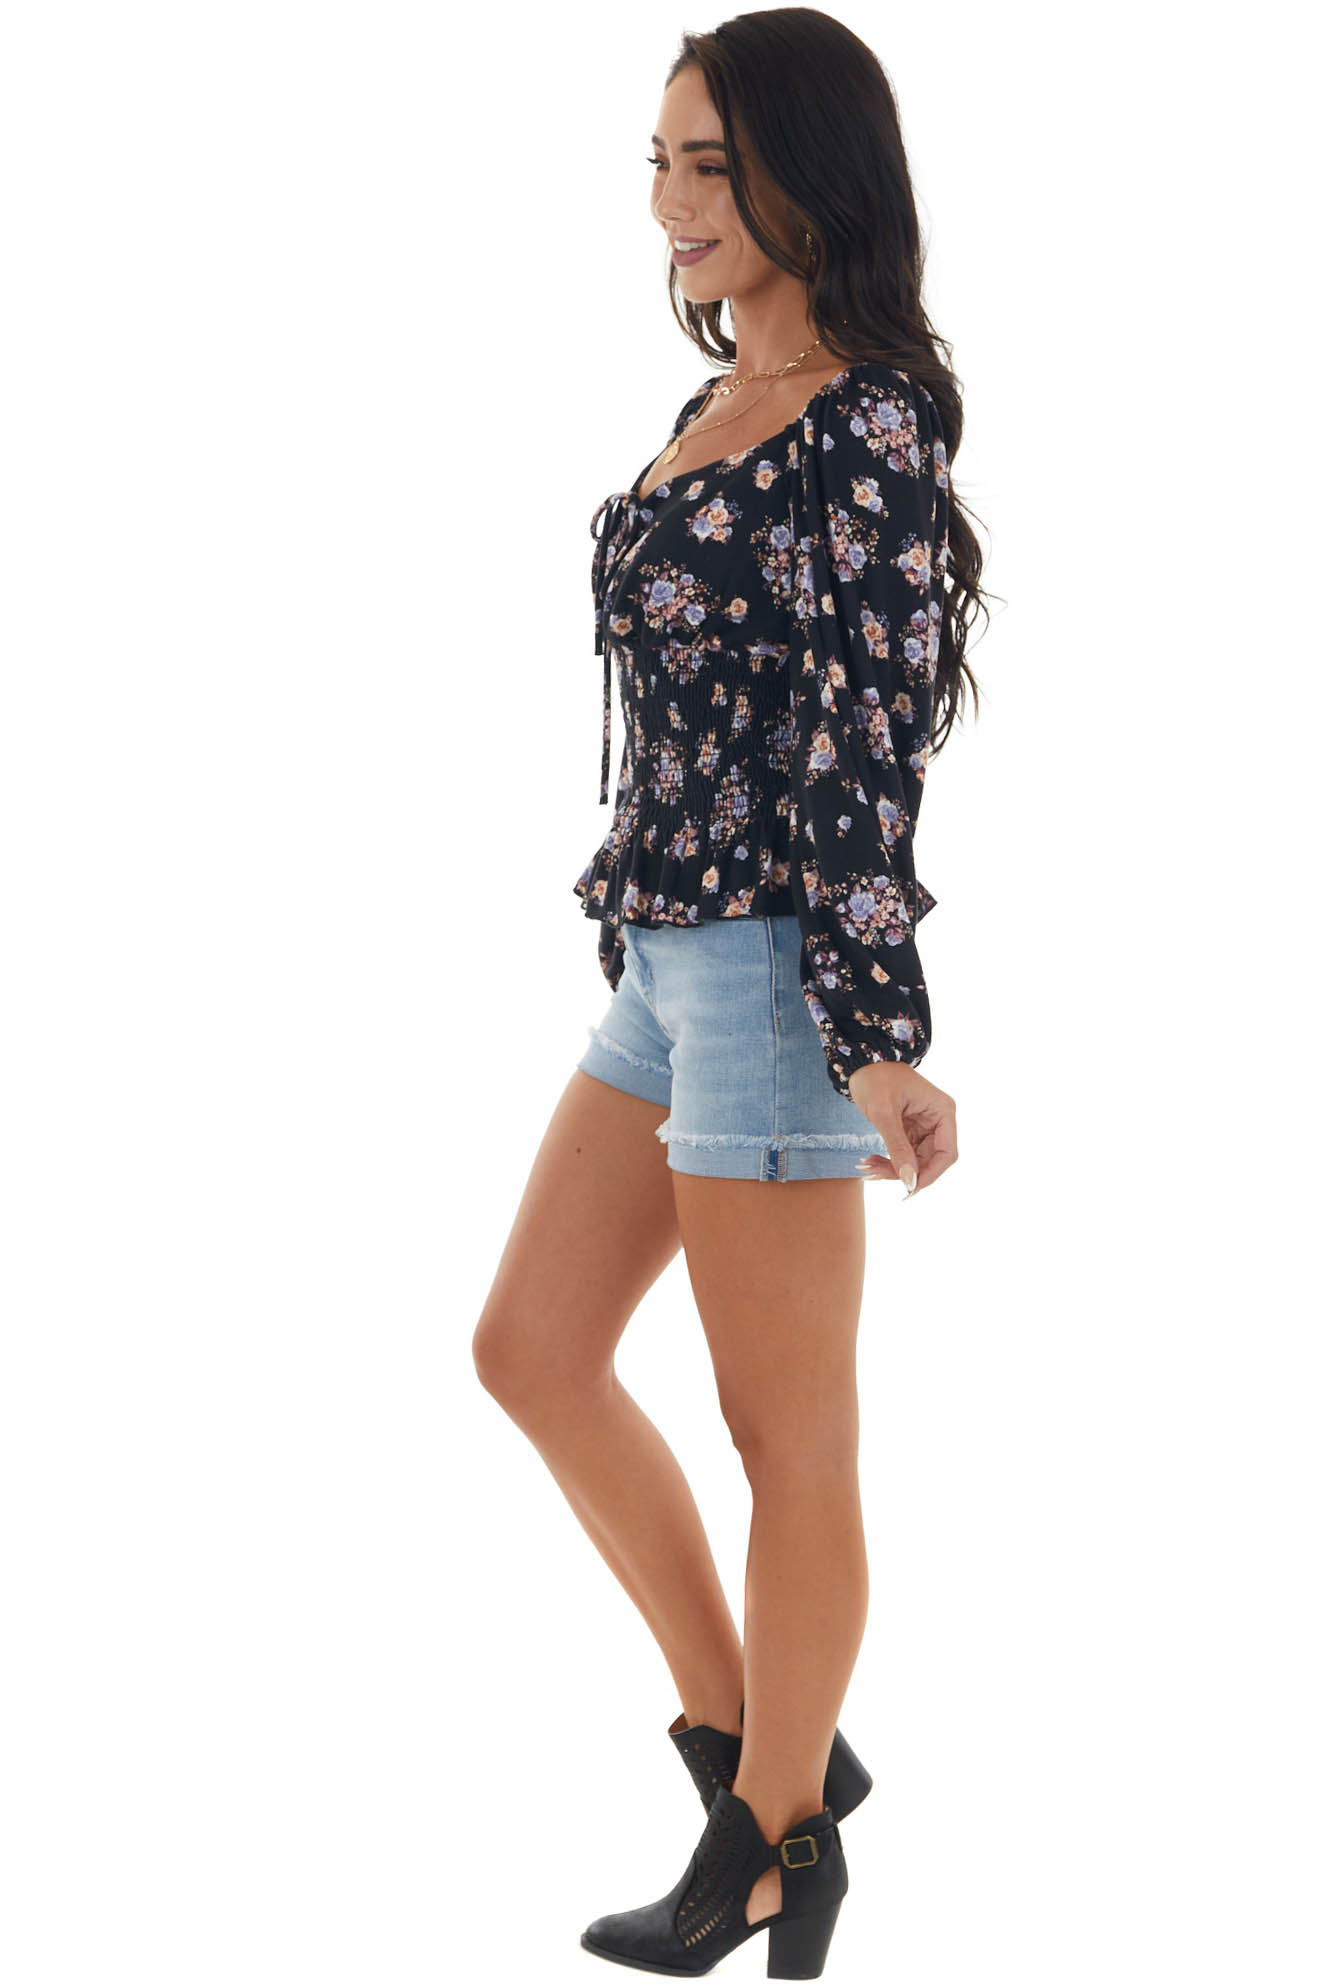 Black Floral Print Smocked Knit Top with Tie